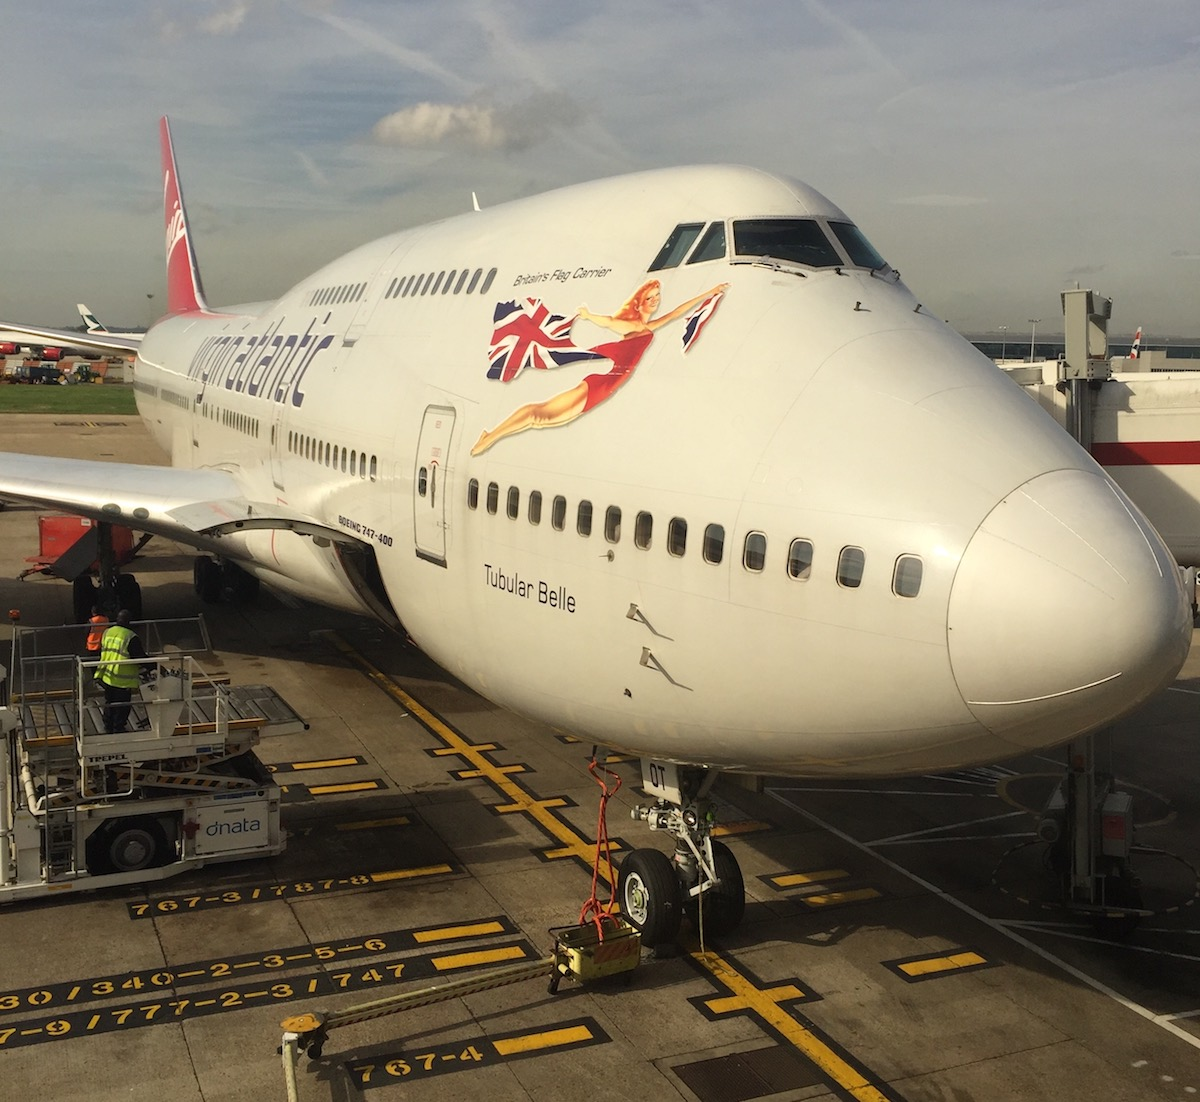 Virgin Atlantic Ending Flights To Dubai In 2019 - One Mile at a Time